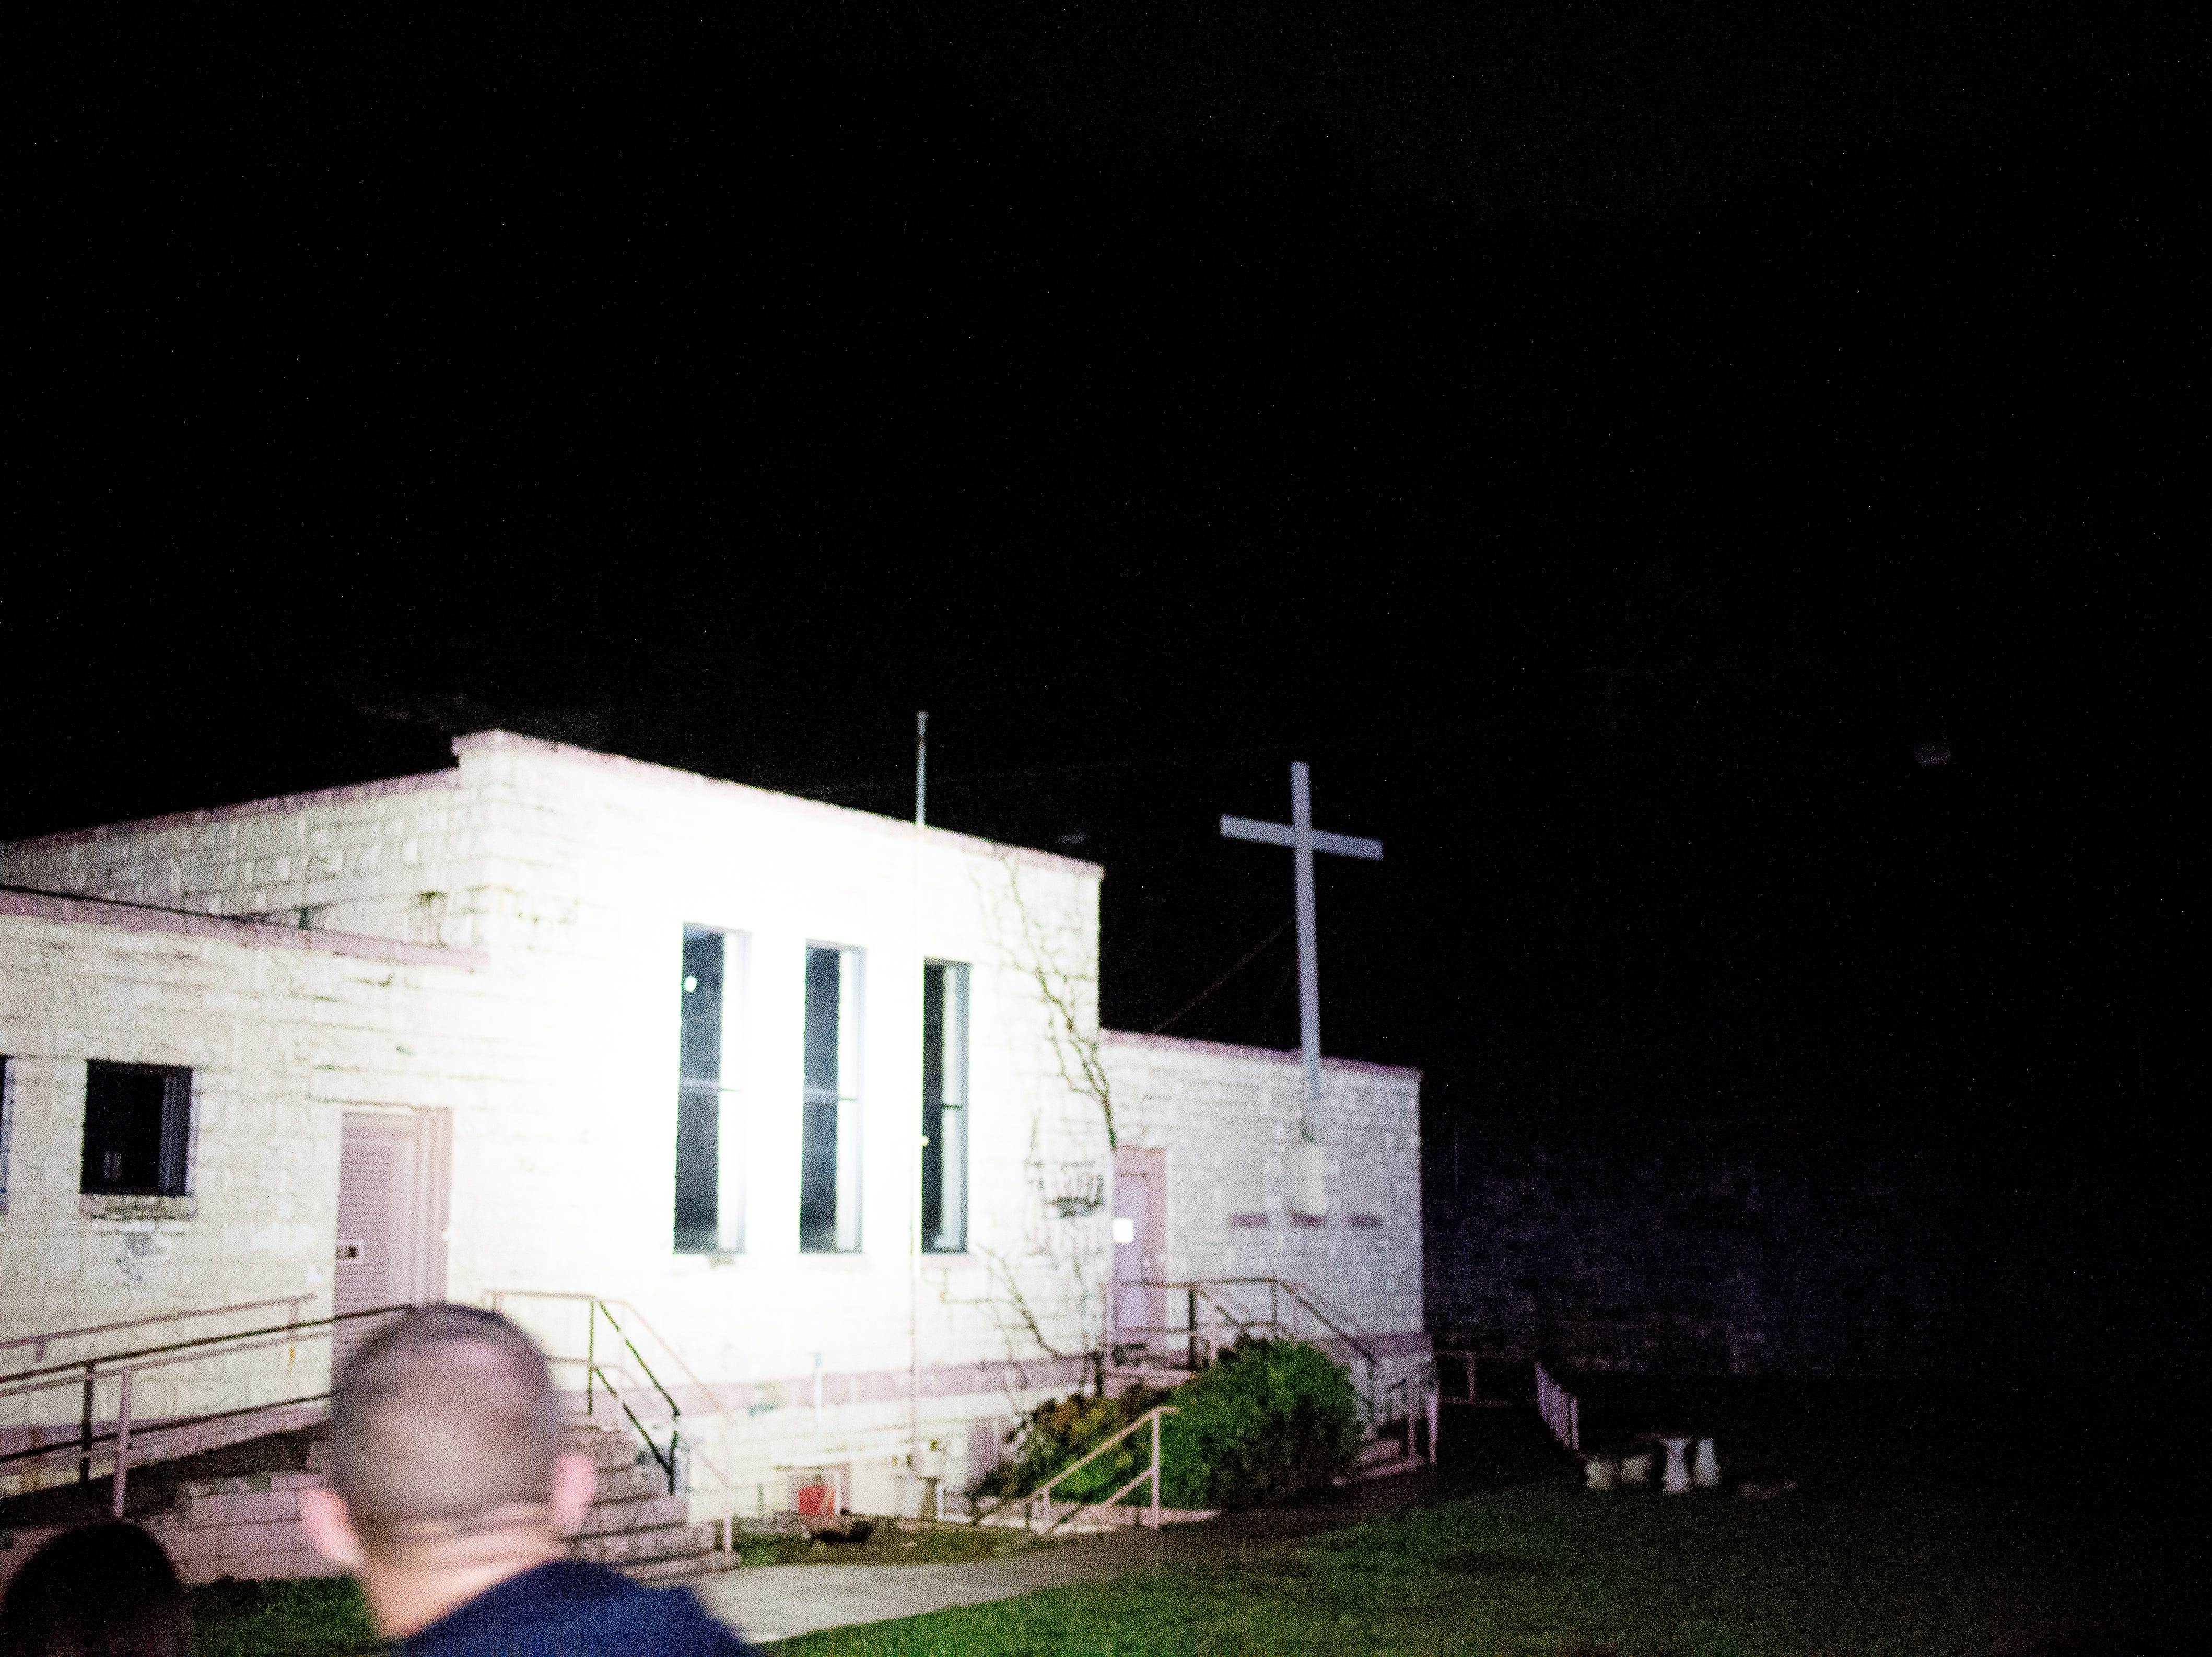 A cross can be seen in front of the chapel during a paranormal flashlight tour of Brushy Mountain State Penitentiary in Petros, Tennessee on Tuesday, October 16, 2018.